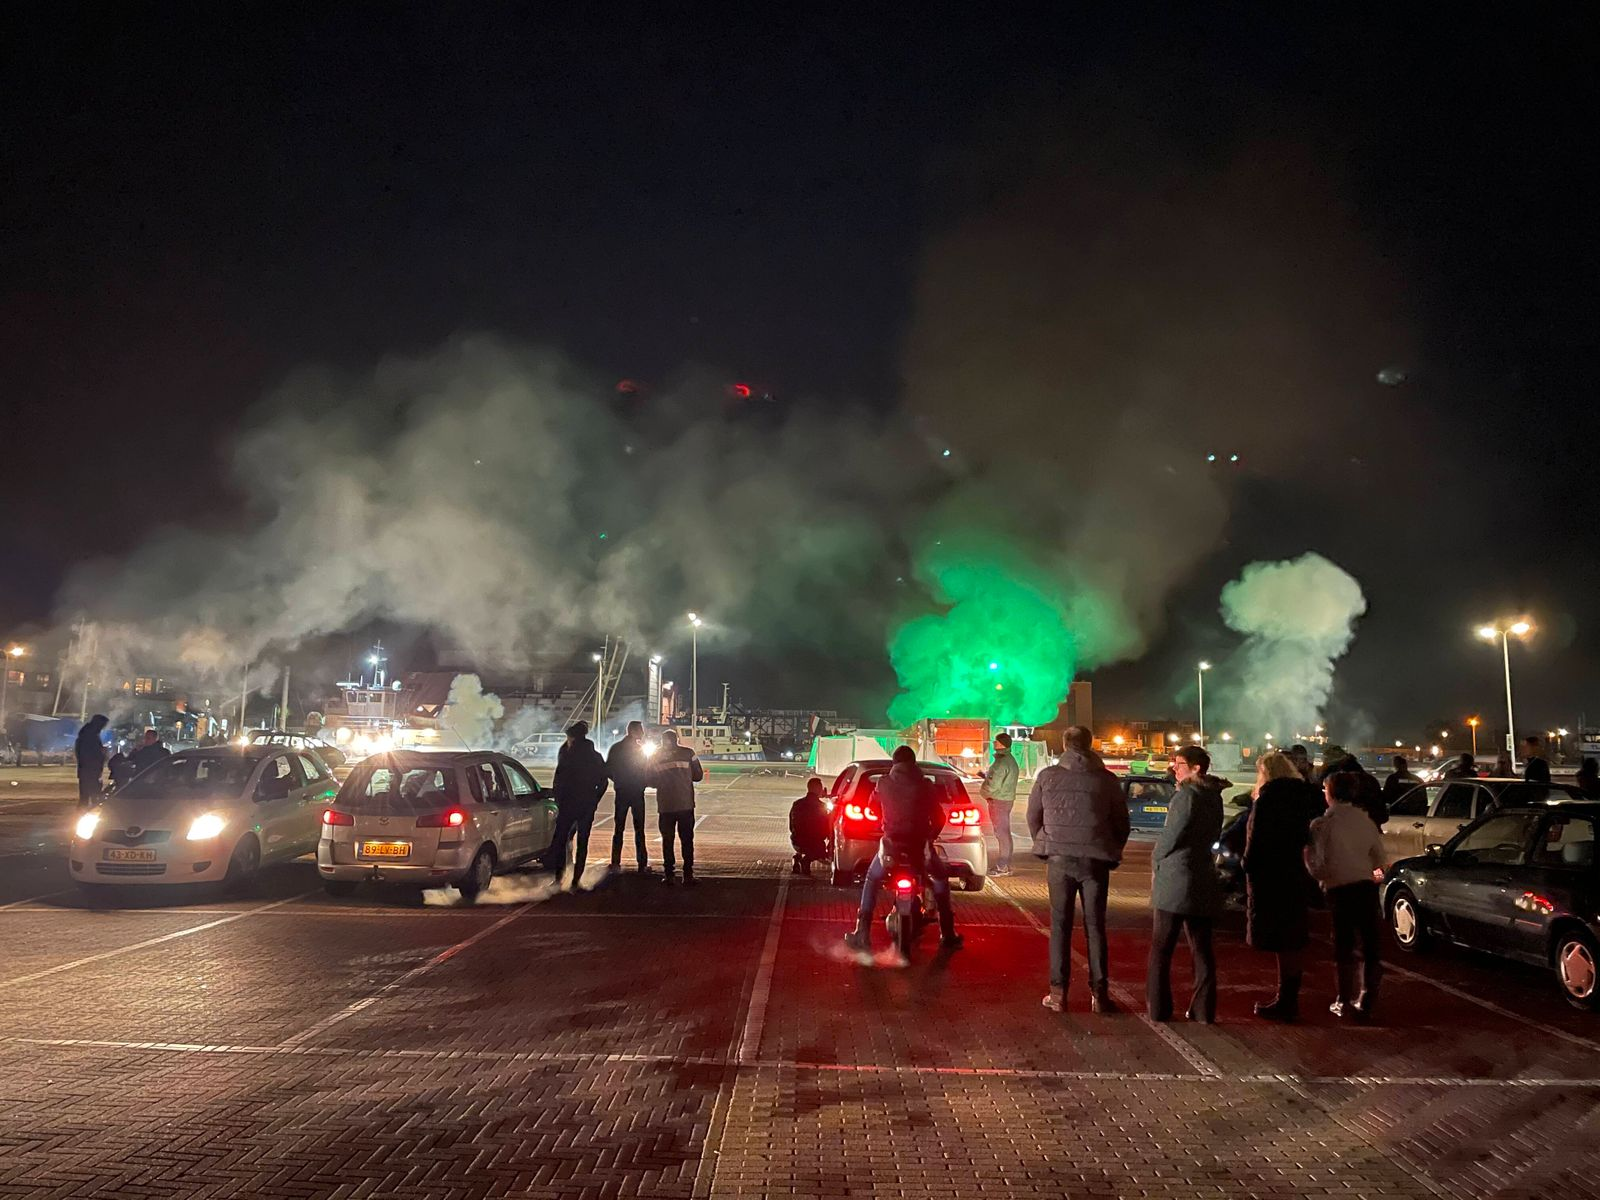 URK - 23-01-2021. In Urk people turned against the police en masse after the curfew. Among other things, a coronavirus